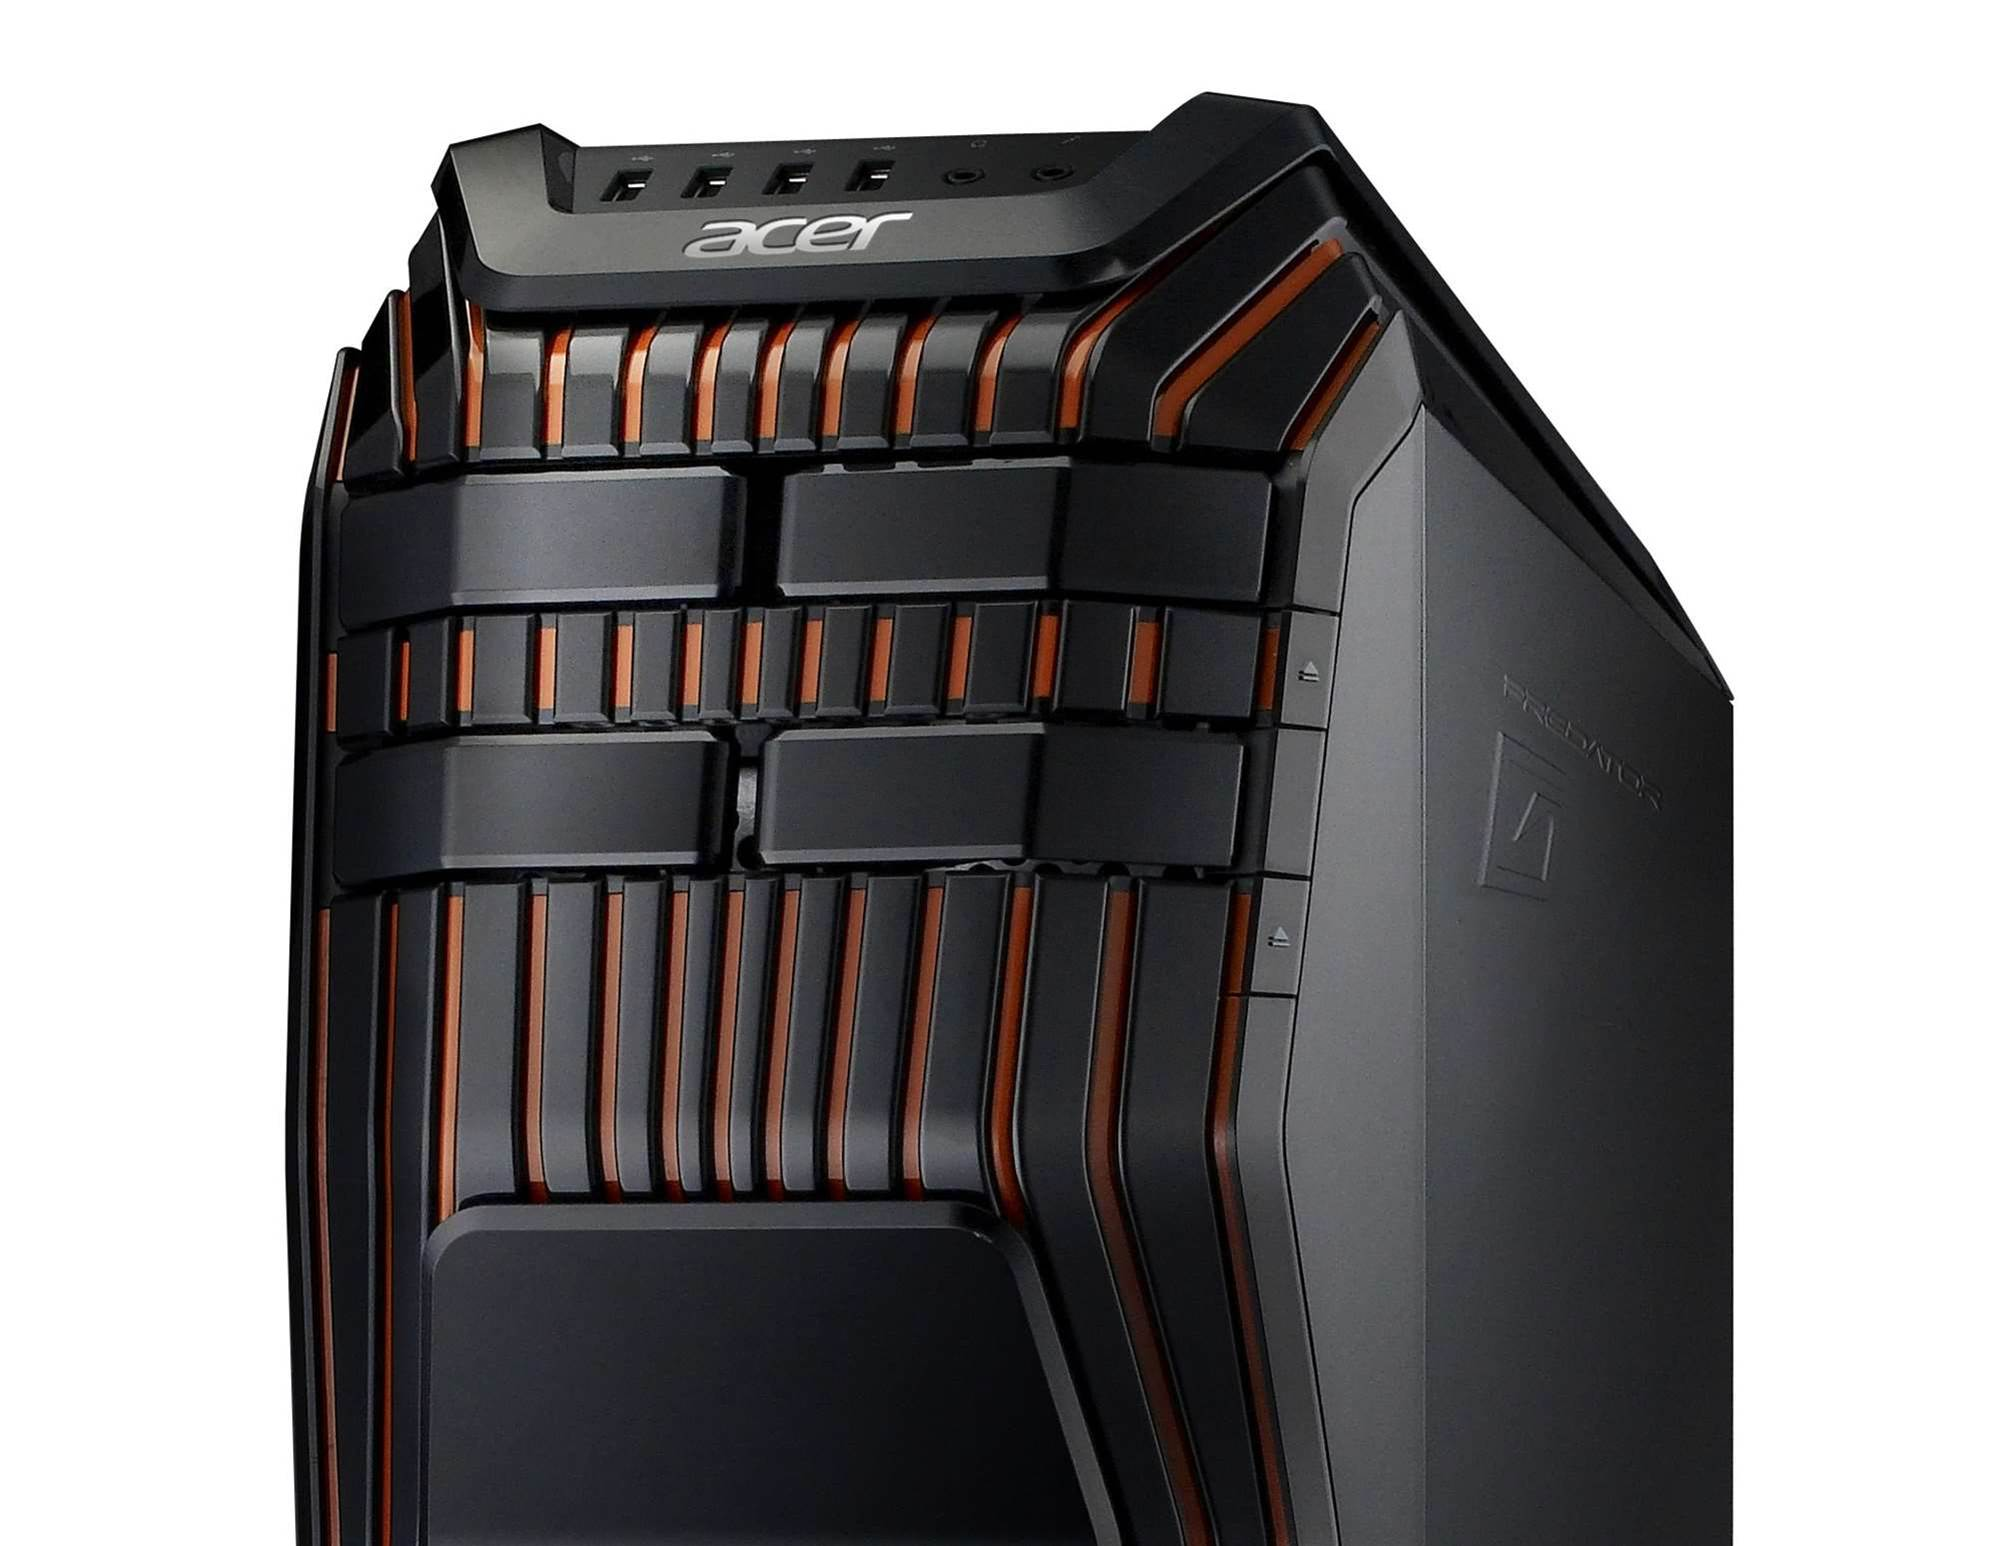 COMPETITION: WIN AN ACER ASPIRE PREDATOR PC